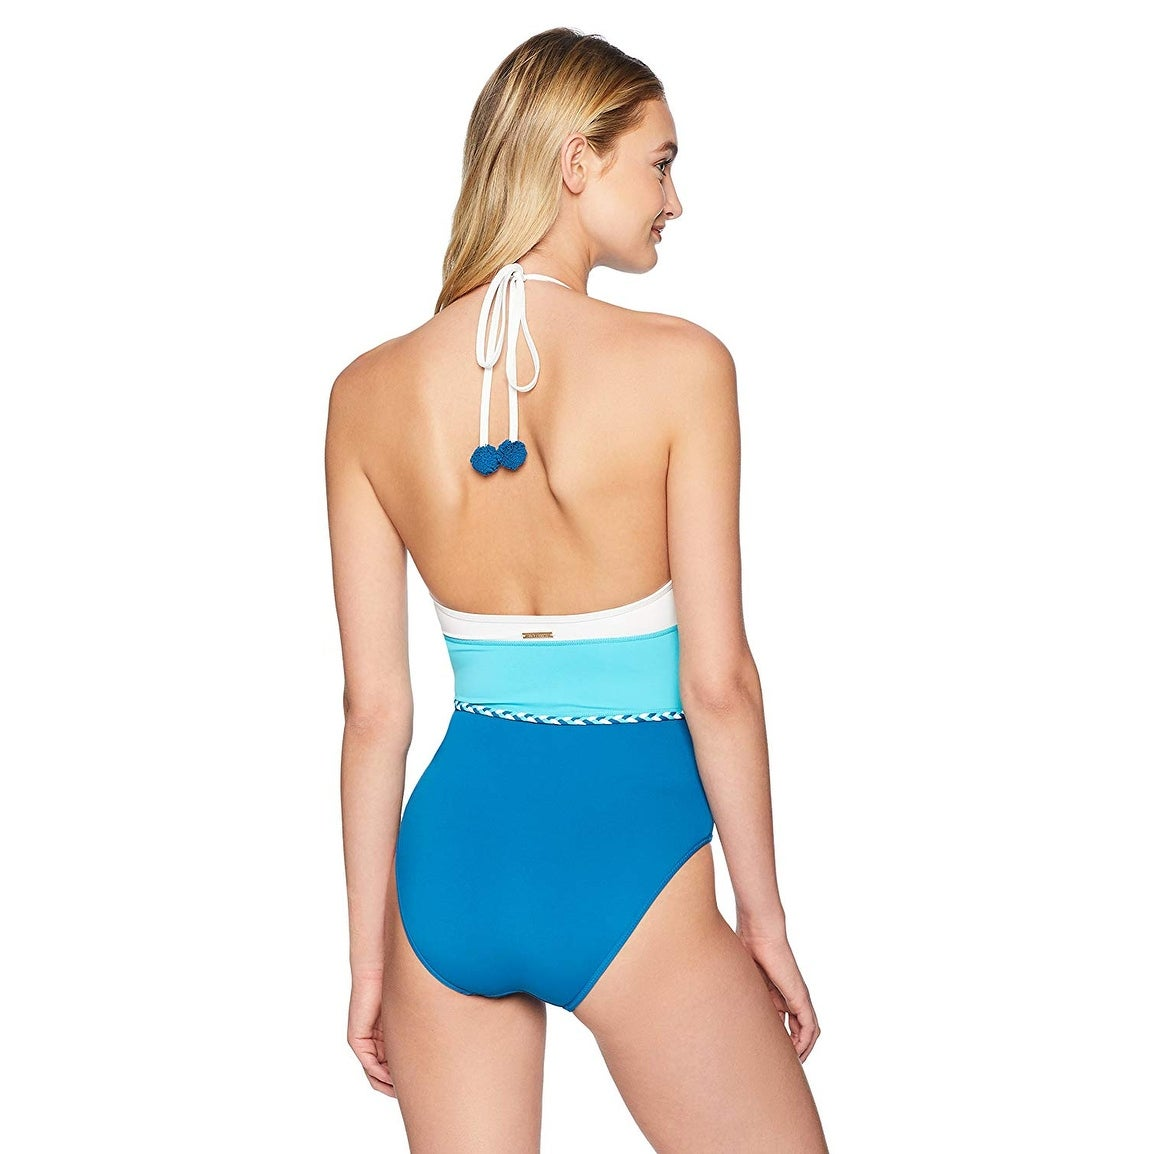 76d49c54e2 Shop Vince Camuto Women One-Piece Halter Colorblock Swimsuit V37548 -  Marine - 4 - Free Shipping Today - Overstock - 28061068